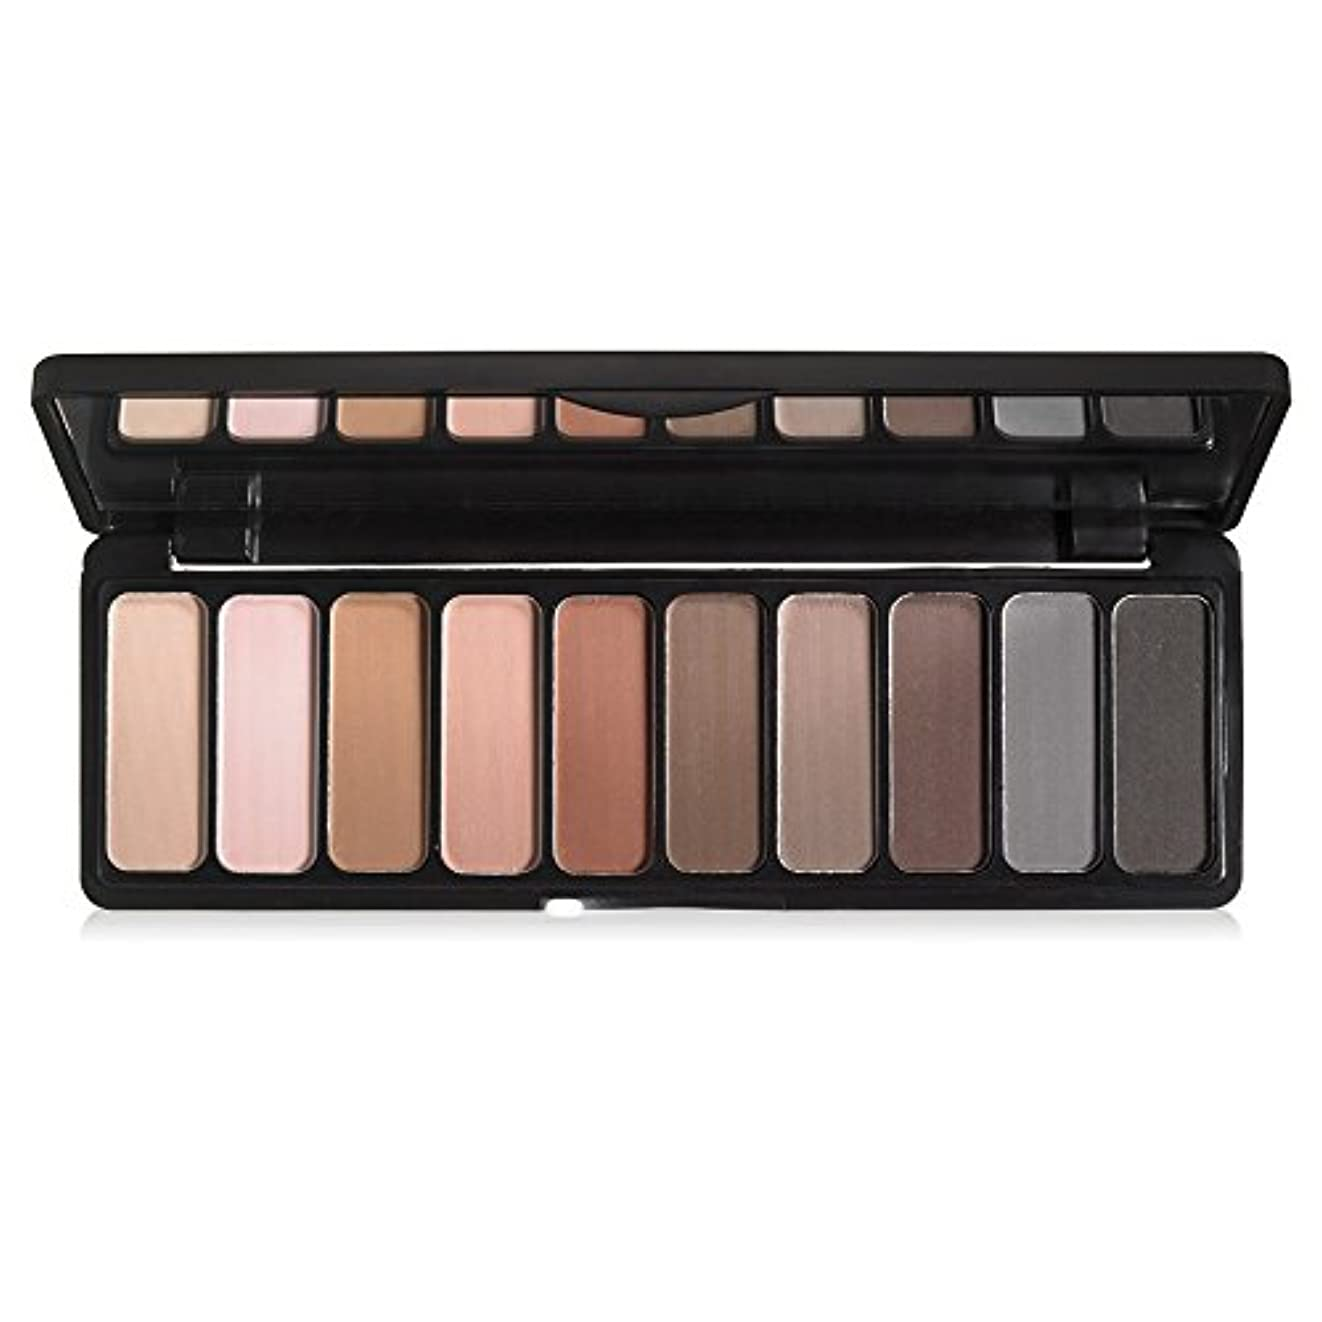 e.l.f. Studio Mad for Matte Eyeshadow Palette 10 Shades (並行輸入品)